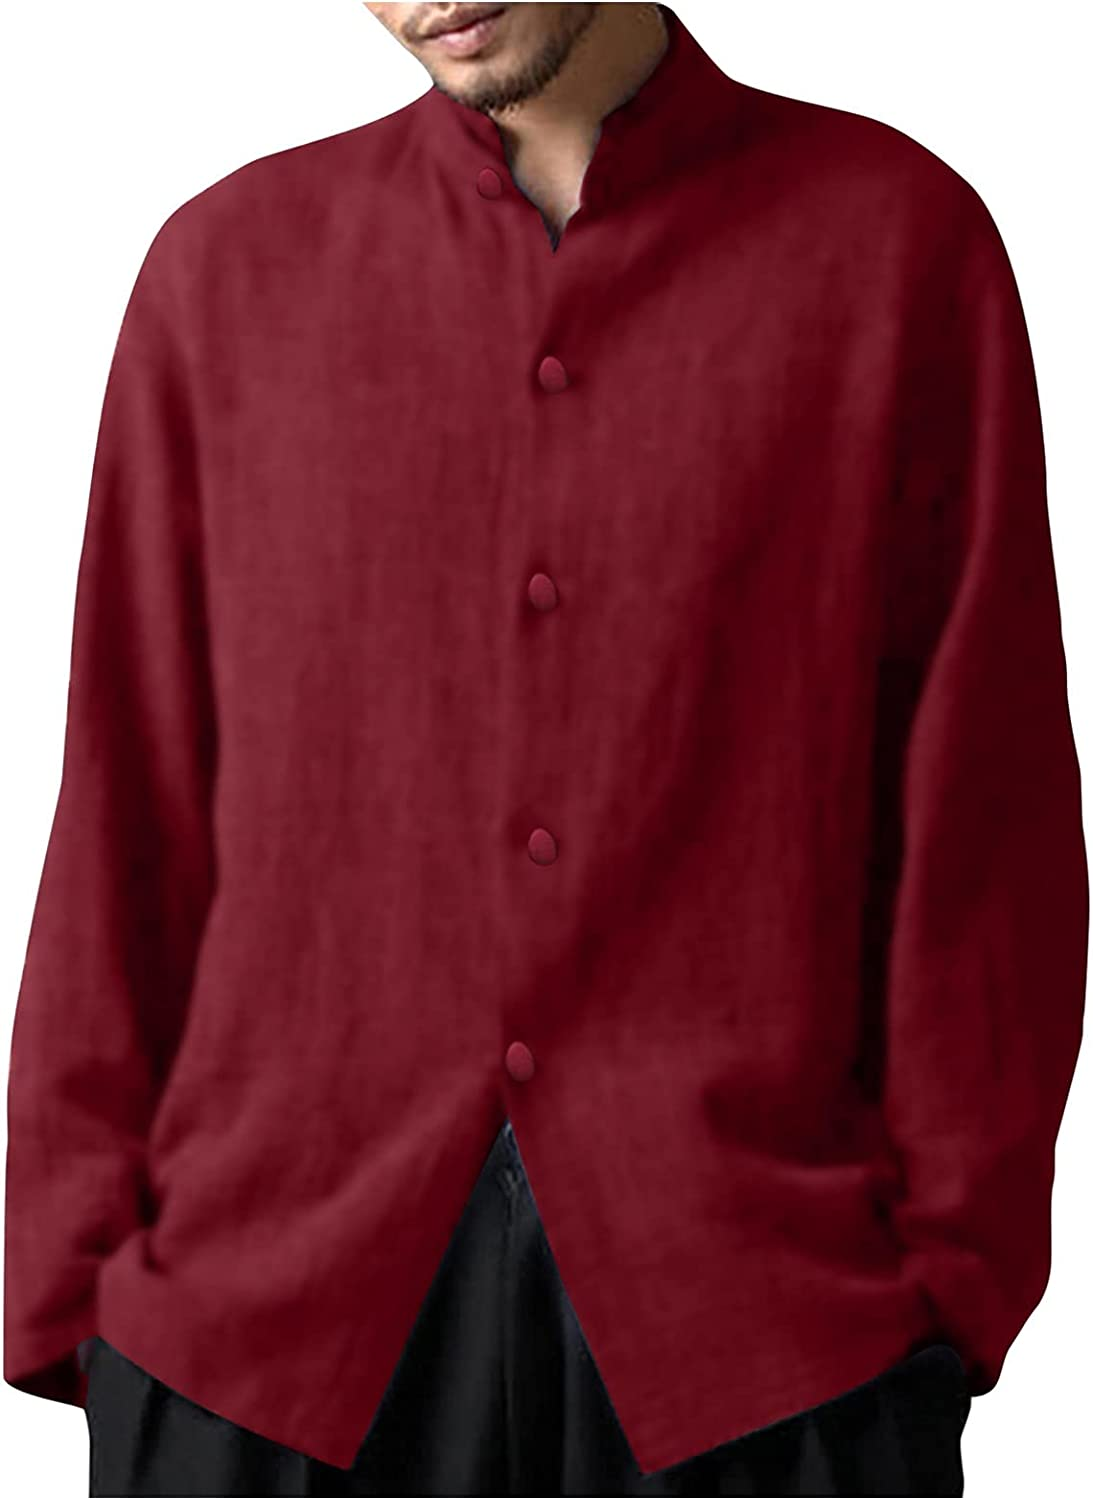 AMTF 2021 Fashion Solid Color Retro Mens Cardigan Shirt Comfortable Casual Stand-Up Collar Cotton Linen Top T-Shirt